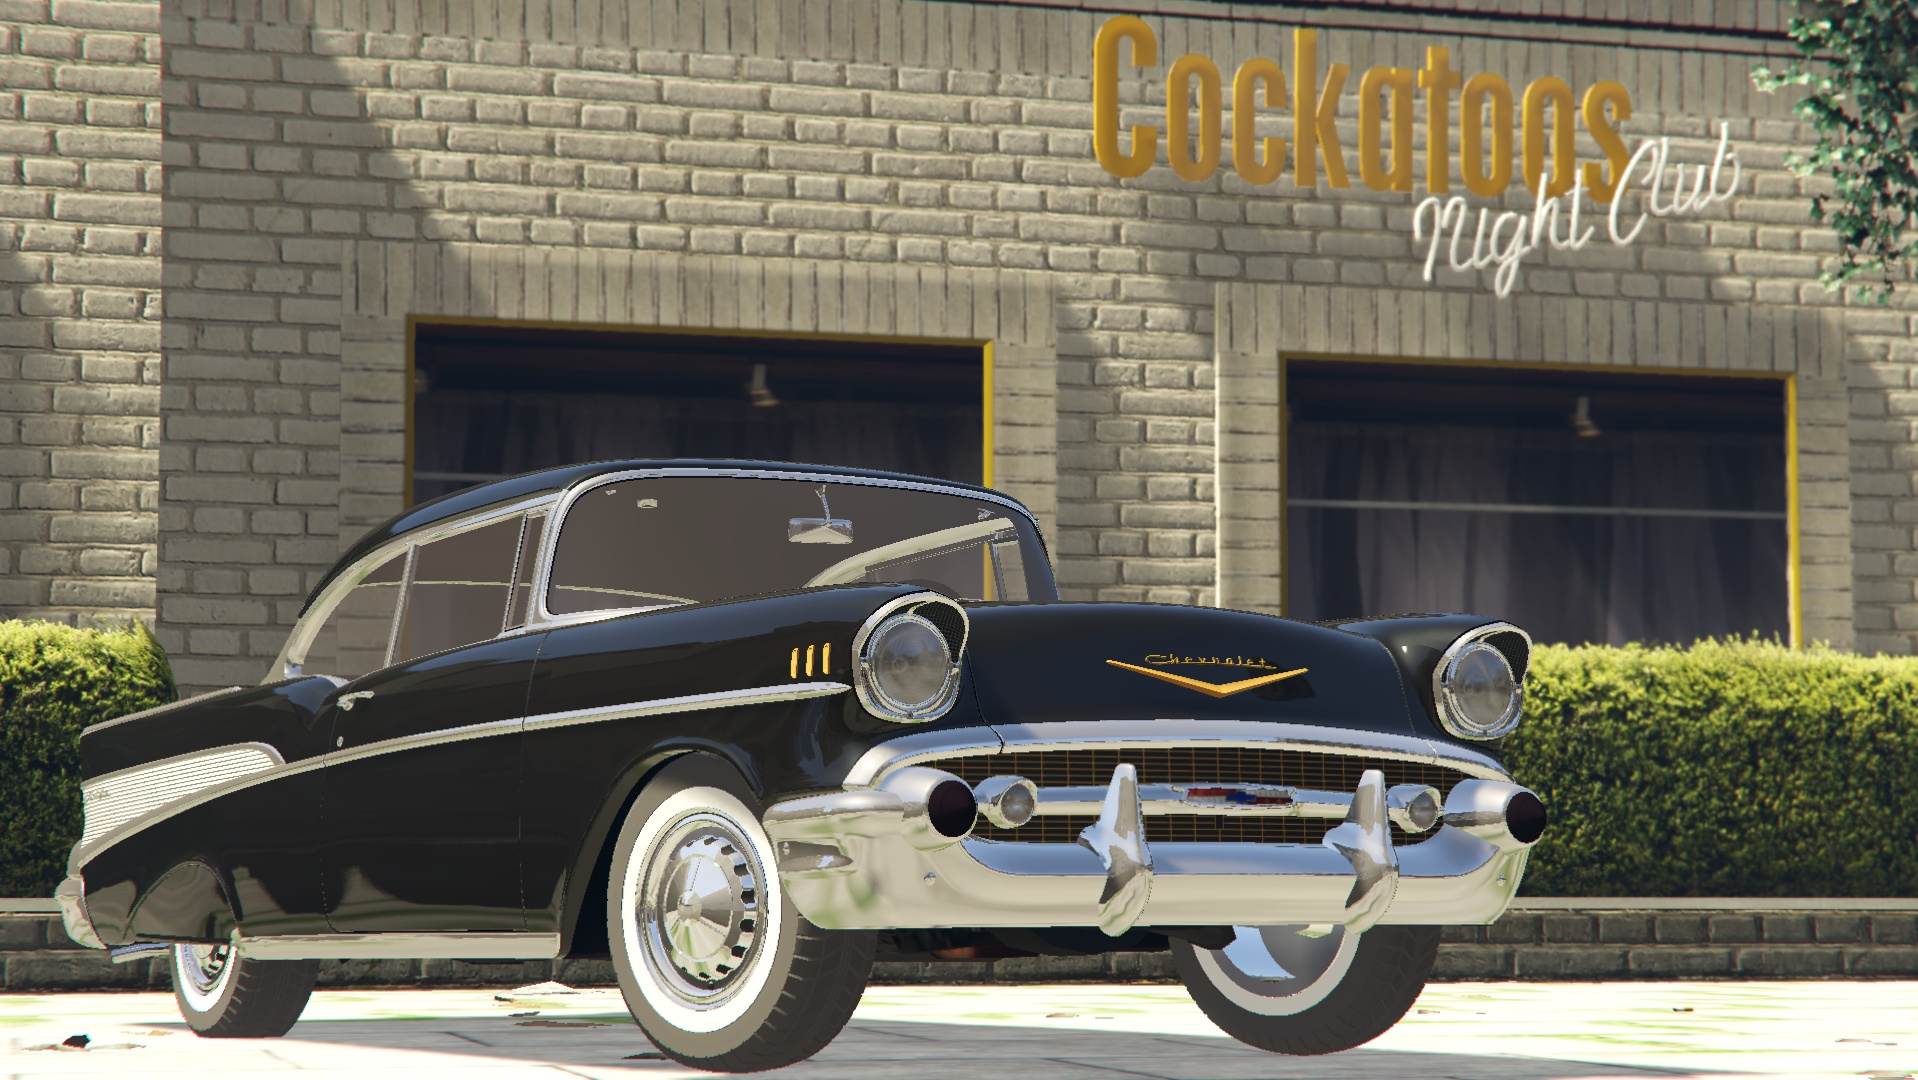 1957 Chevrolet Bel Air Sport Coupe Tuning Chevy Impala 08dd2a Belair1